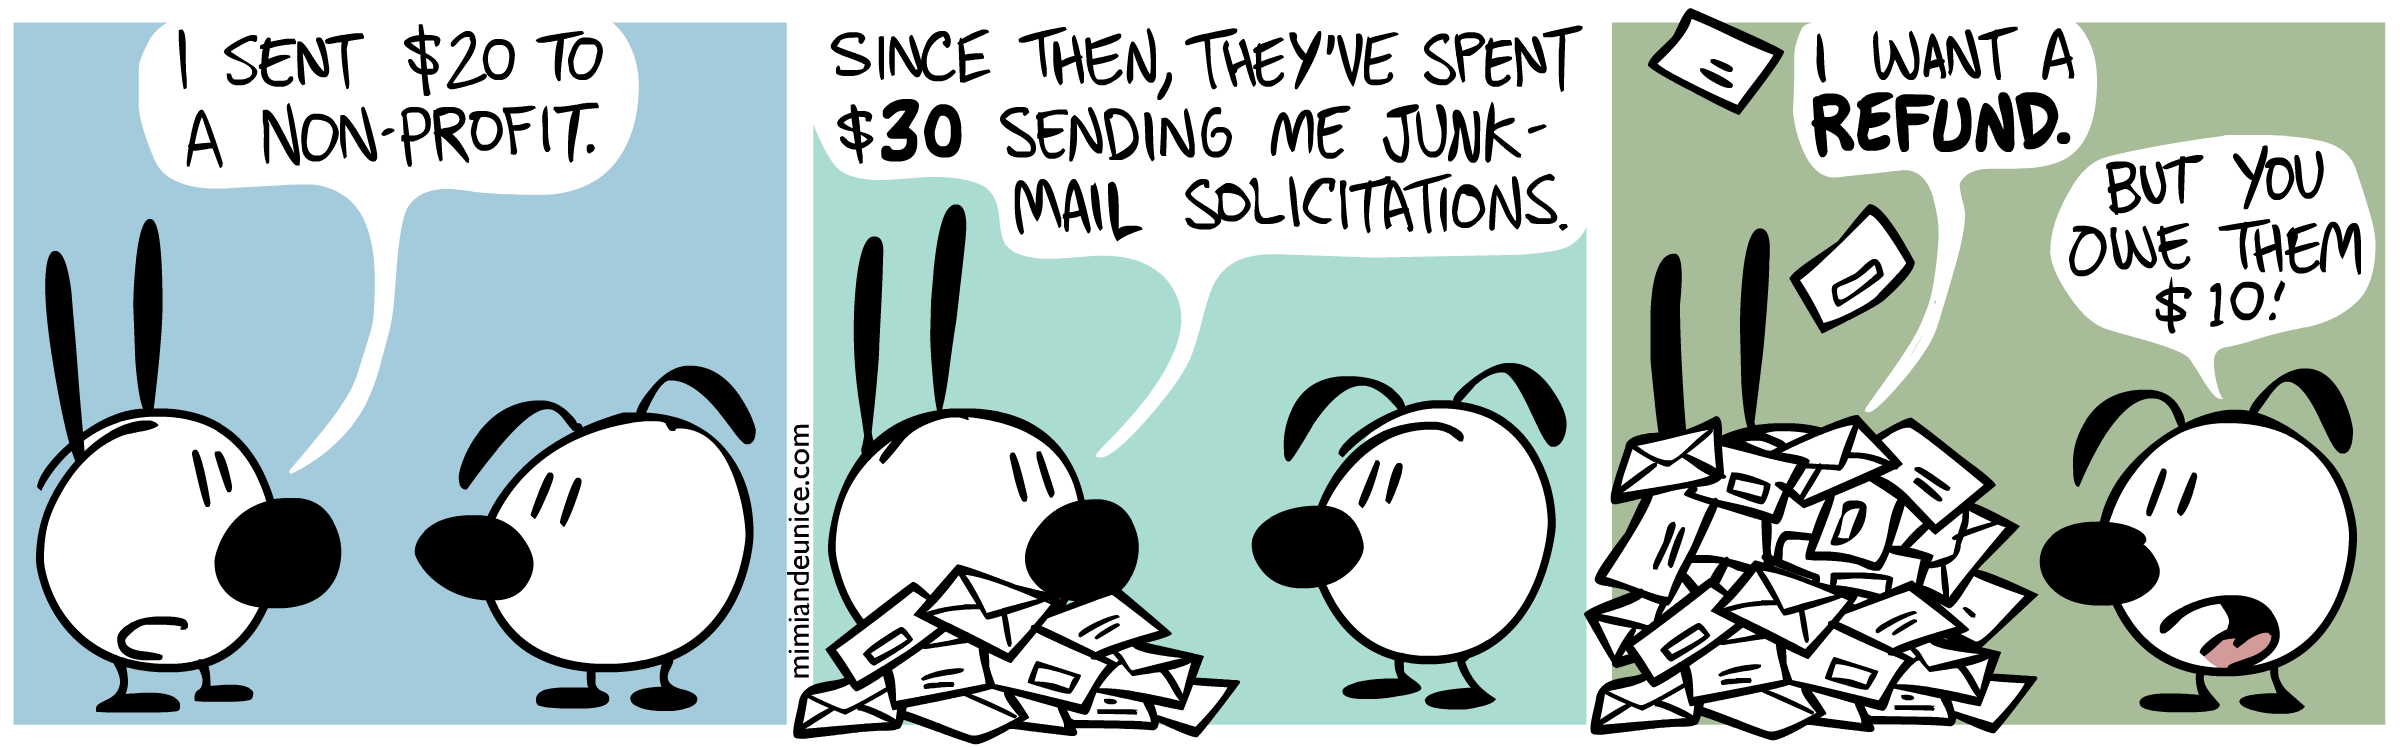 (comic) Mimi: 'I sent $20 to a non-profit. Since then, they've spent $30 sending me junk-mail solicitations. I want a refund.' Eunice: 'But you owe them $10!'